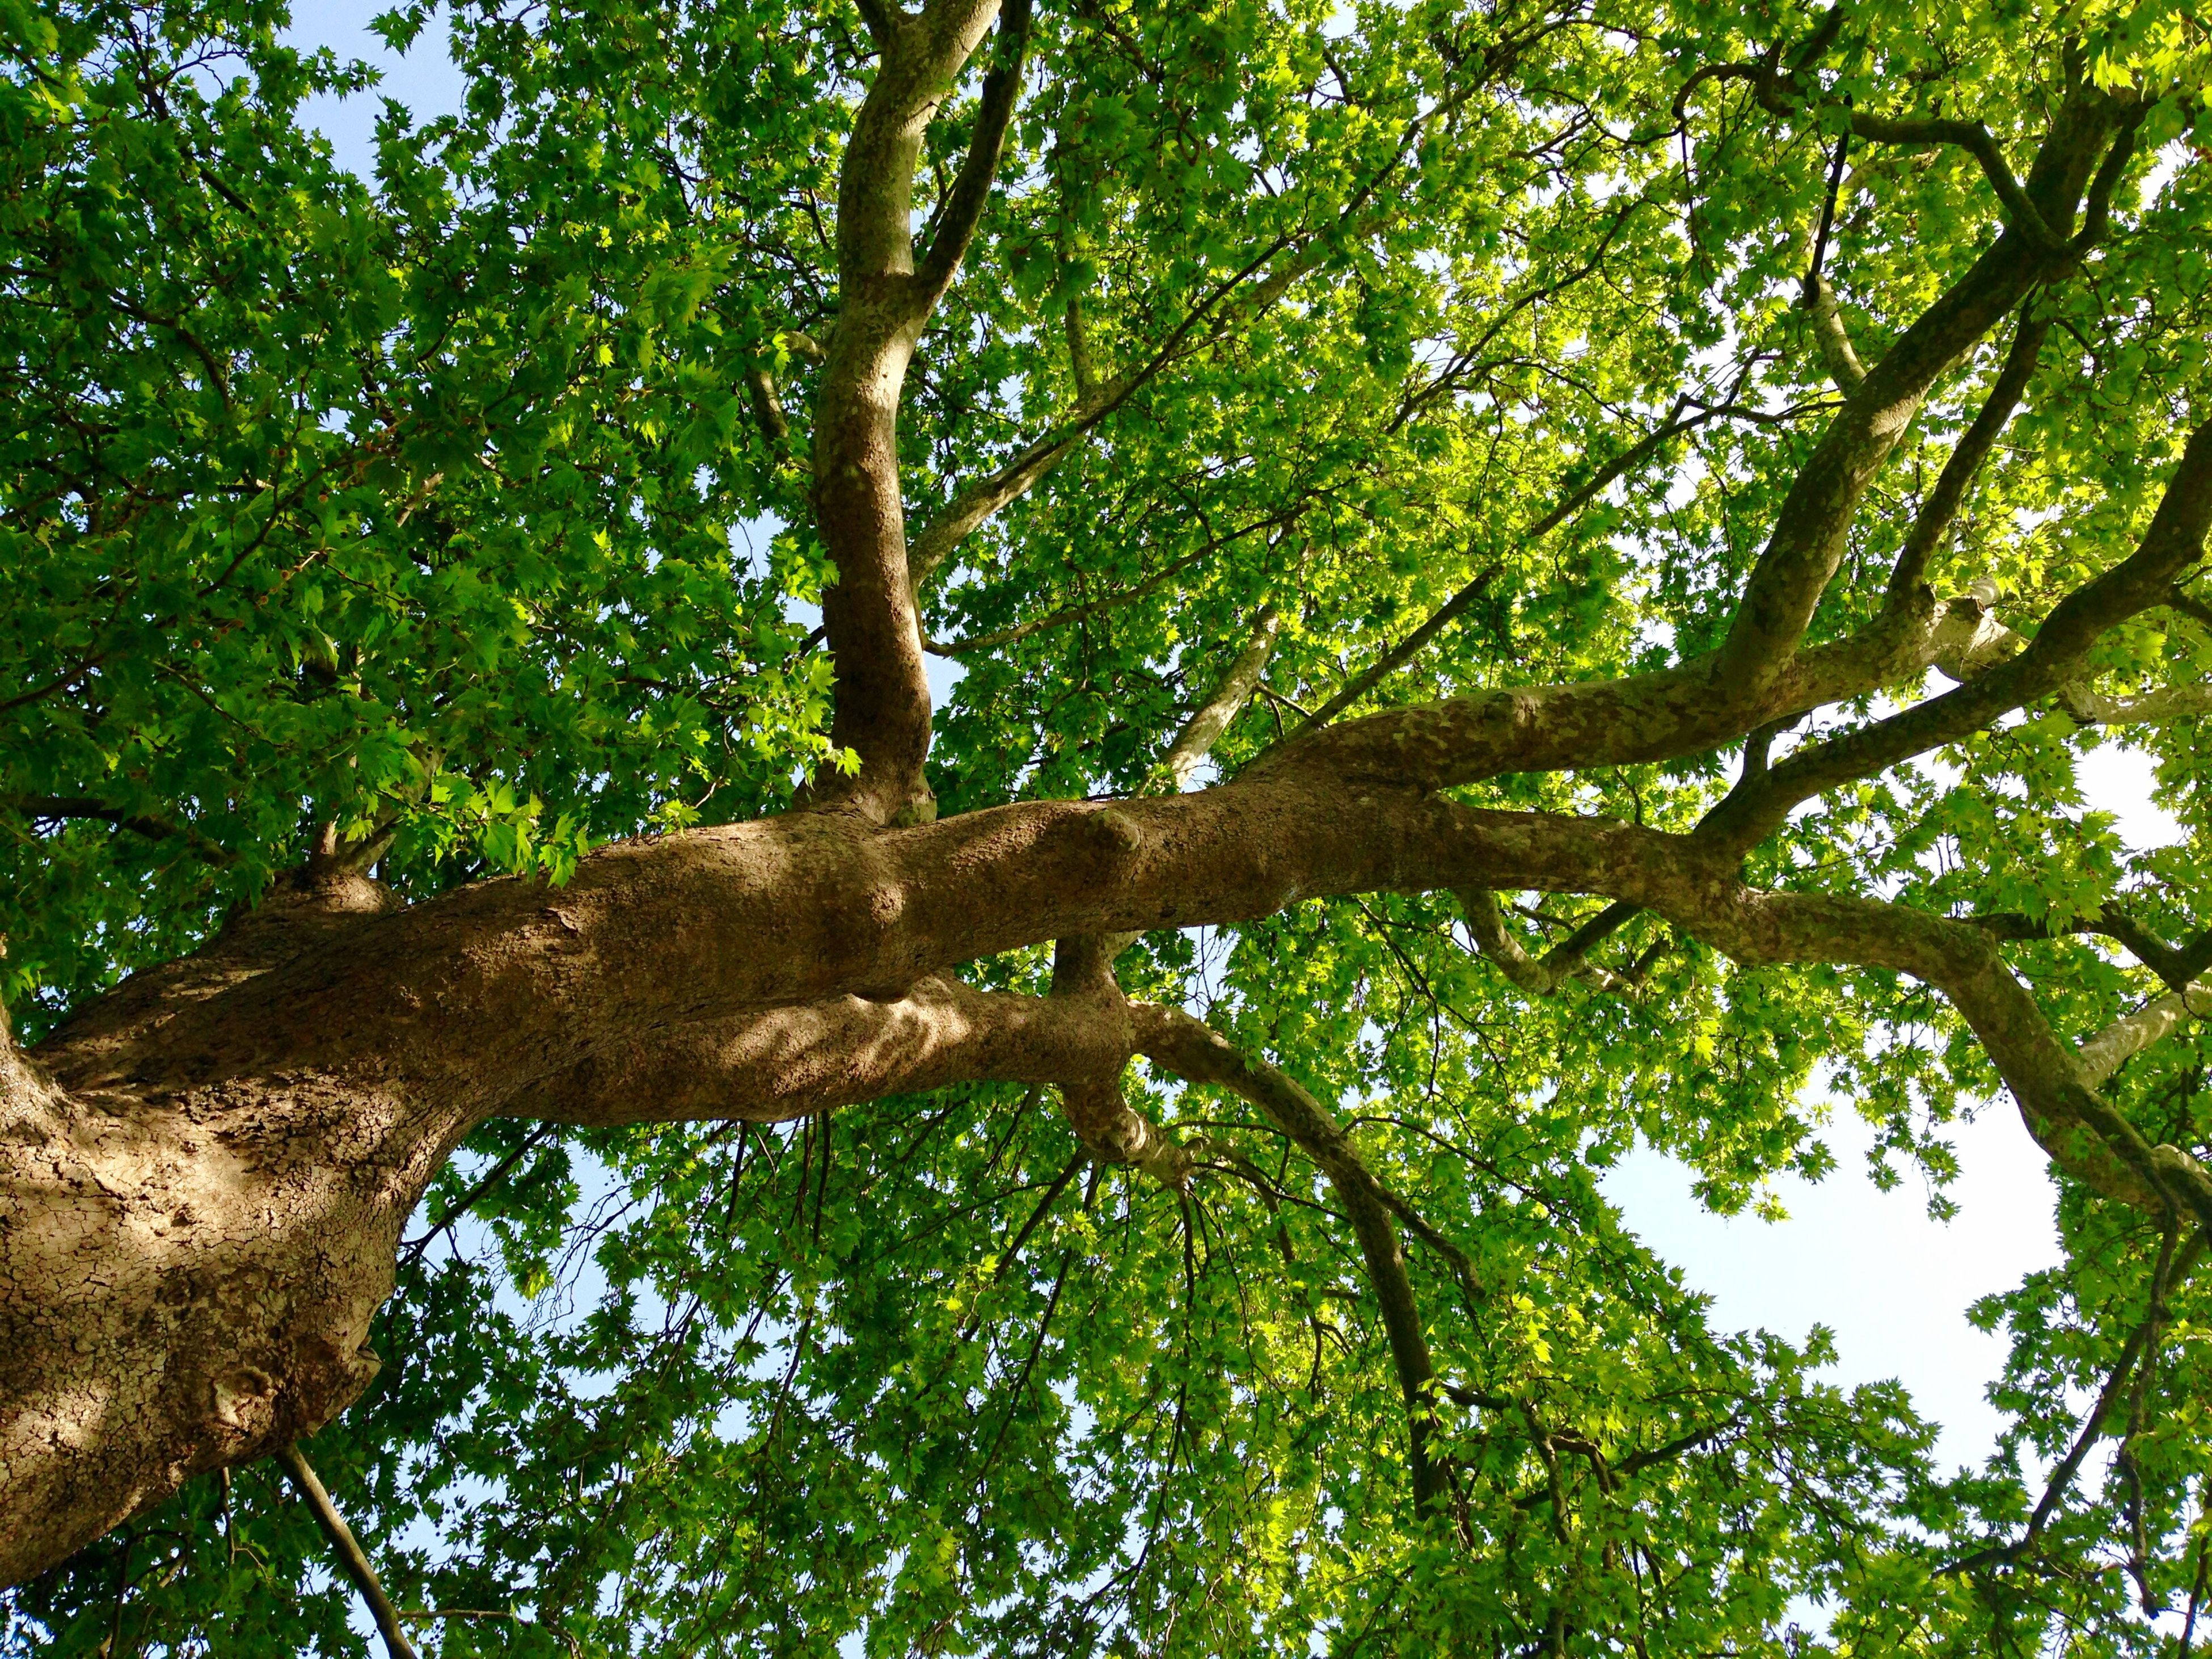 tree, low angle view, branch, growth, green color, nature, tranquility, tree trunk, forest, beauty in nature, lush foliage, green, leaf, day, outdoors, sunlight, scenics, no people, tranquil scene, full frame